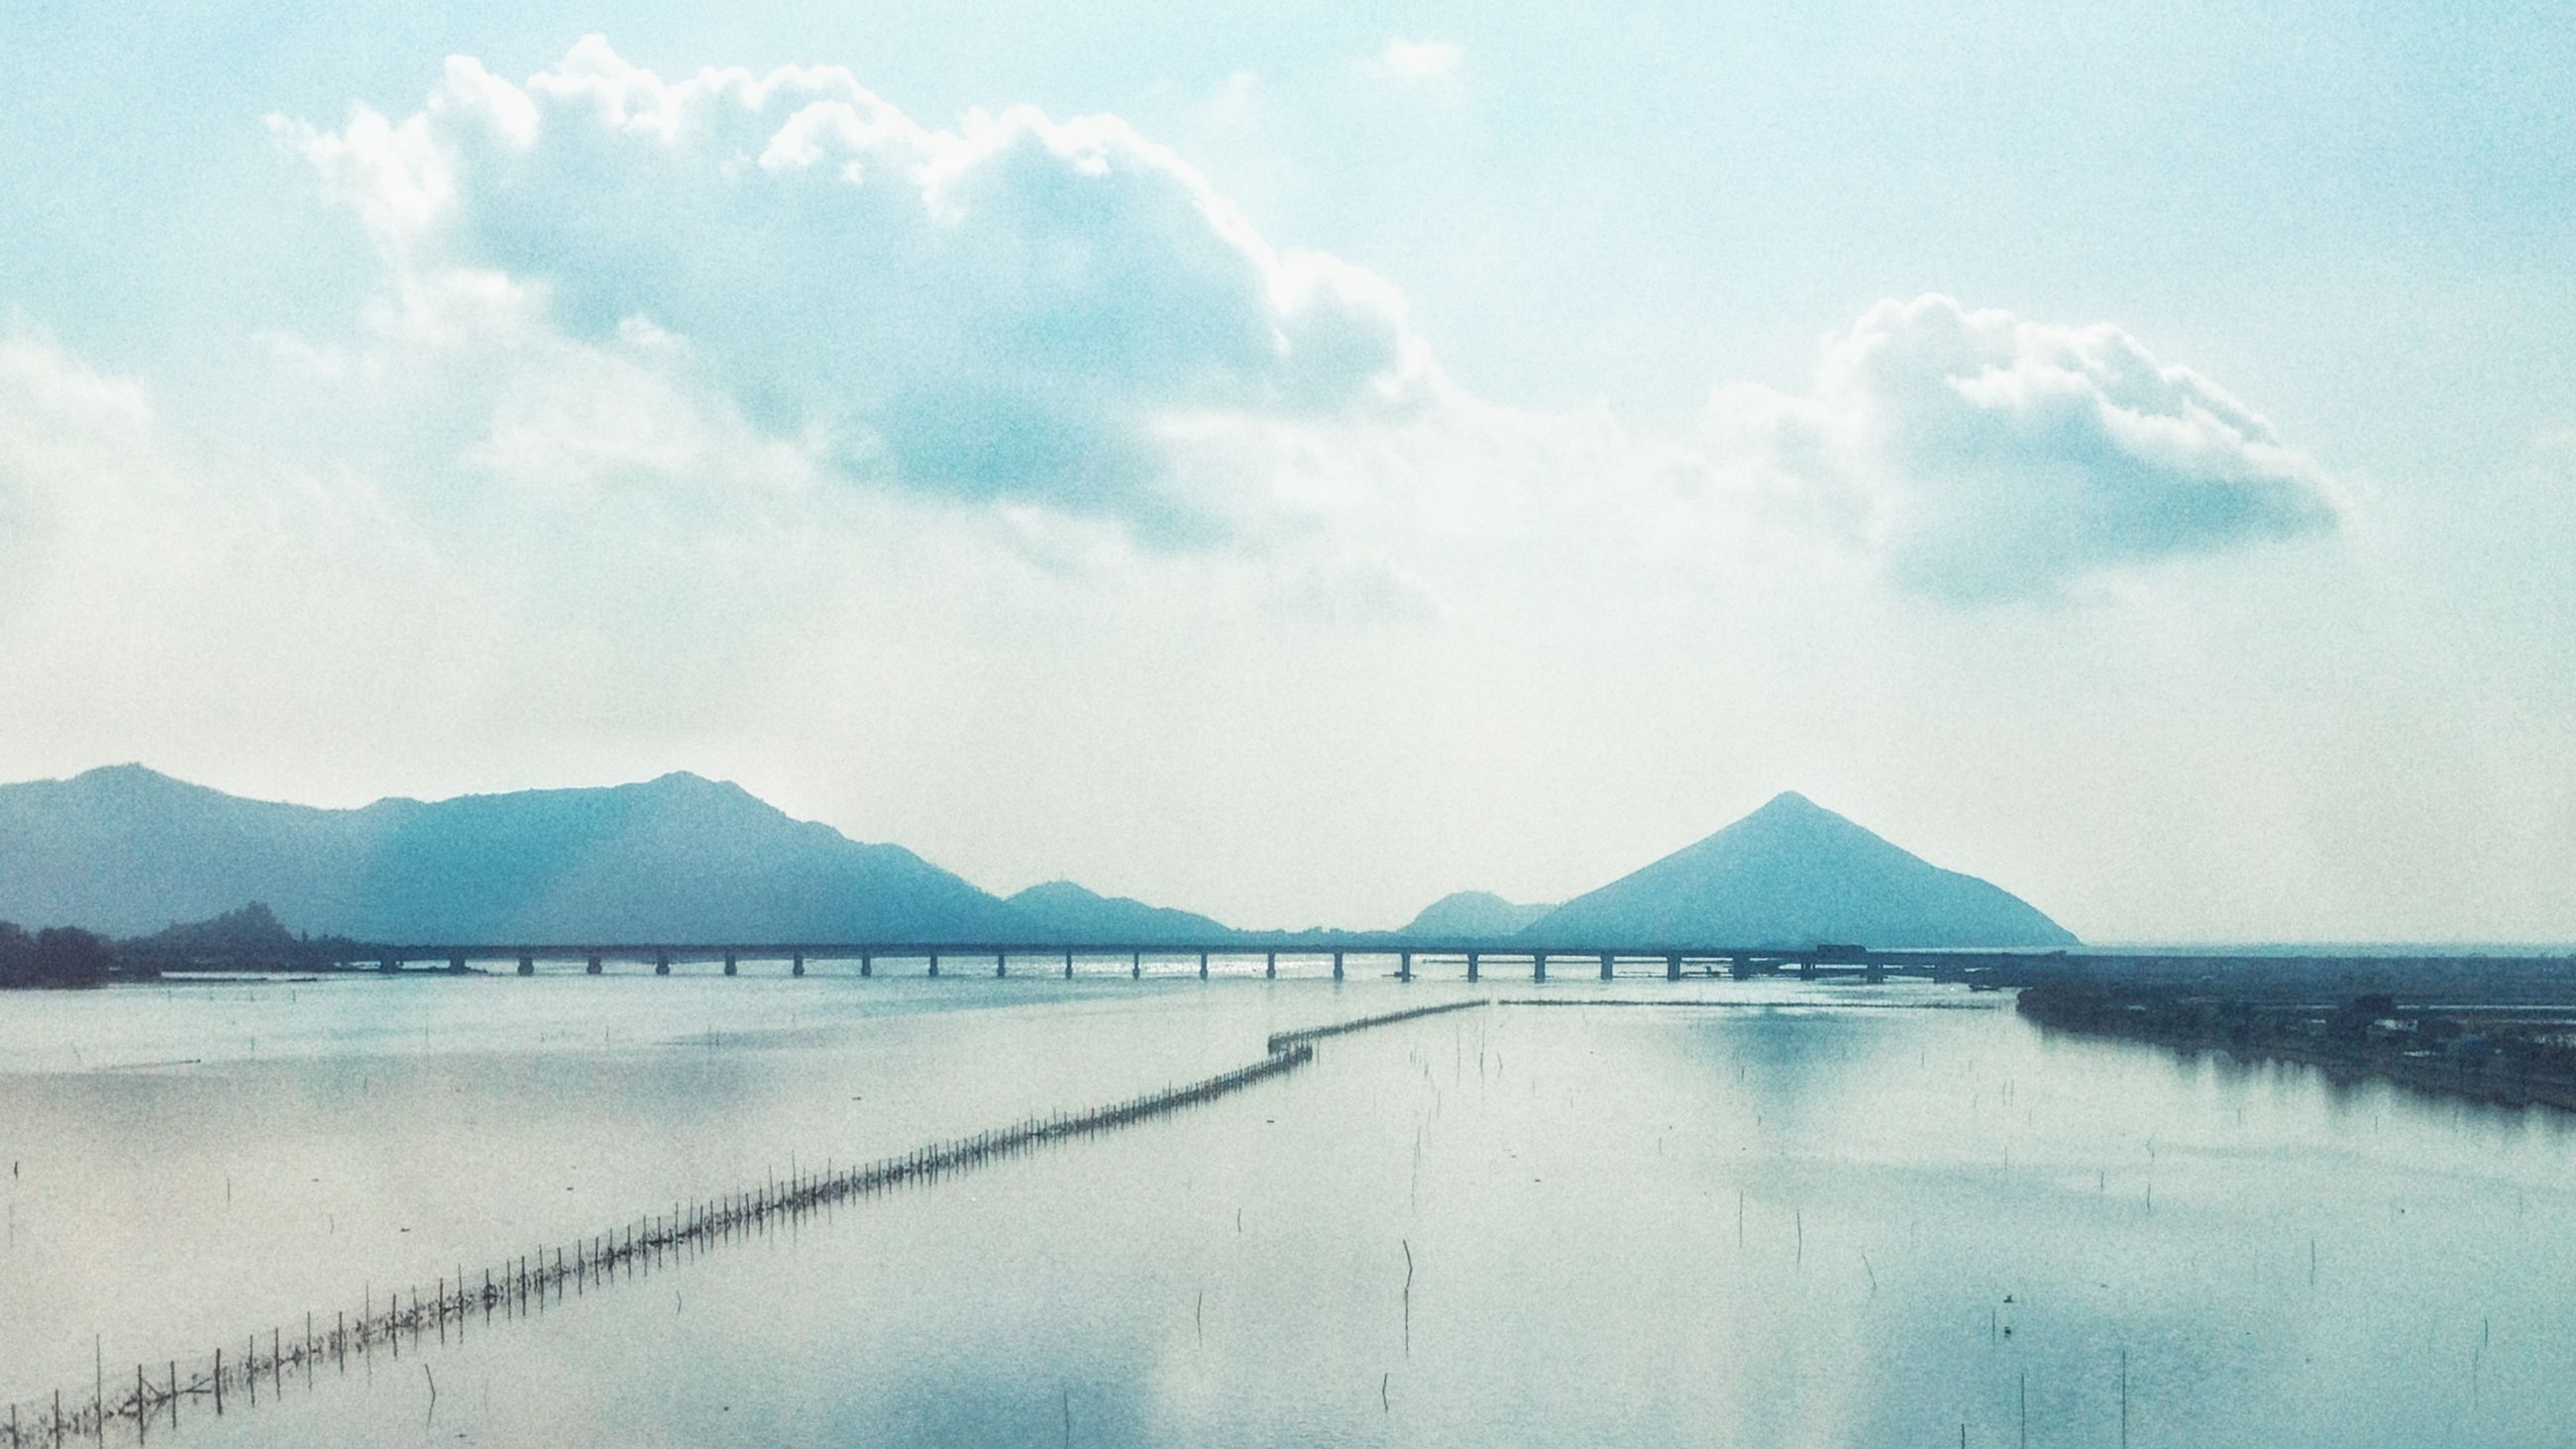 water, sky, sea, tranquil scene, mountain, tranquility, cloud - sky, scenics, beach, beauty in nature, cloud, built structure, nature, pier, day, waterfront, lake, architecture, shore, calm